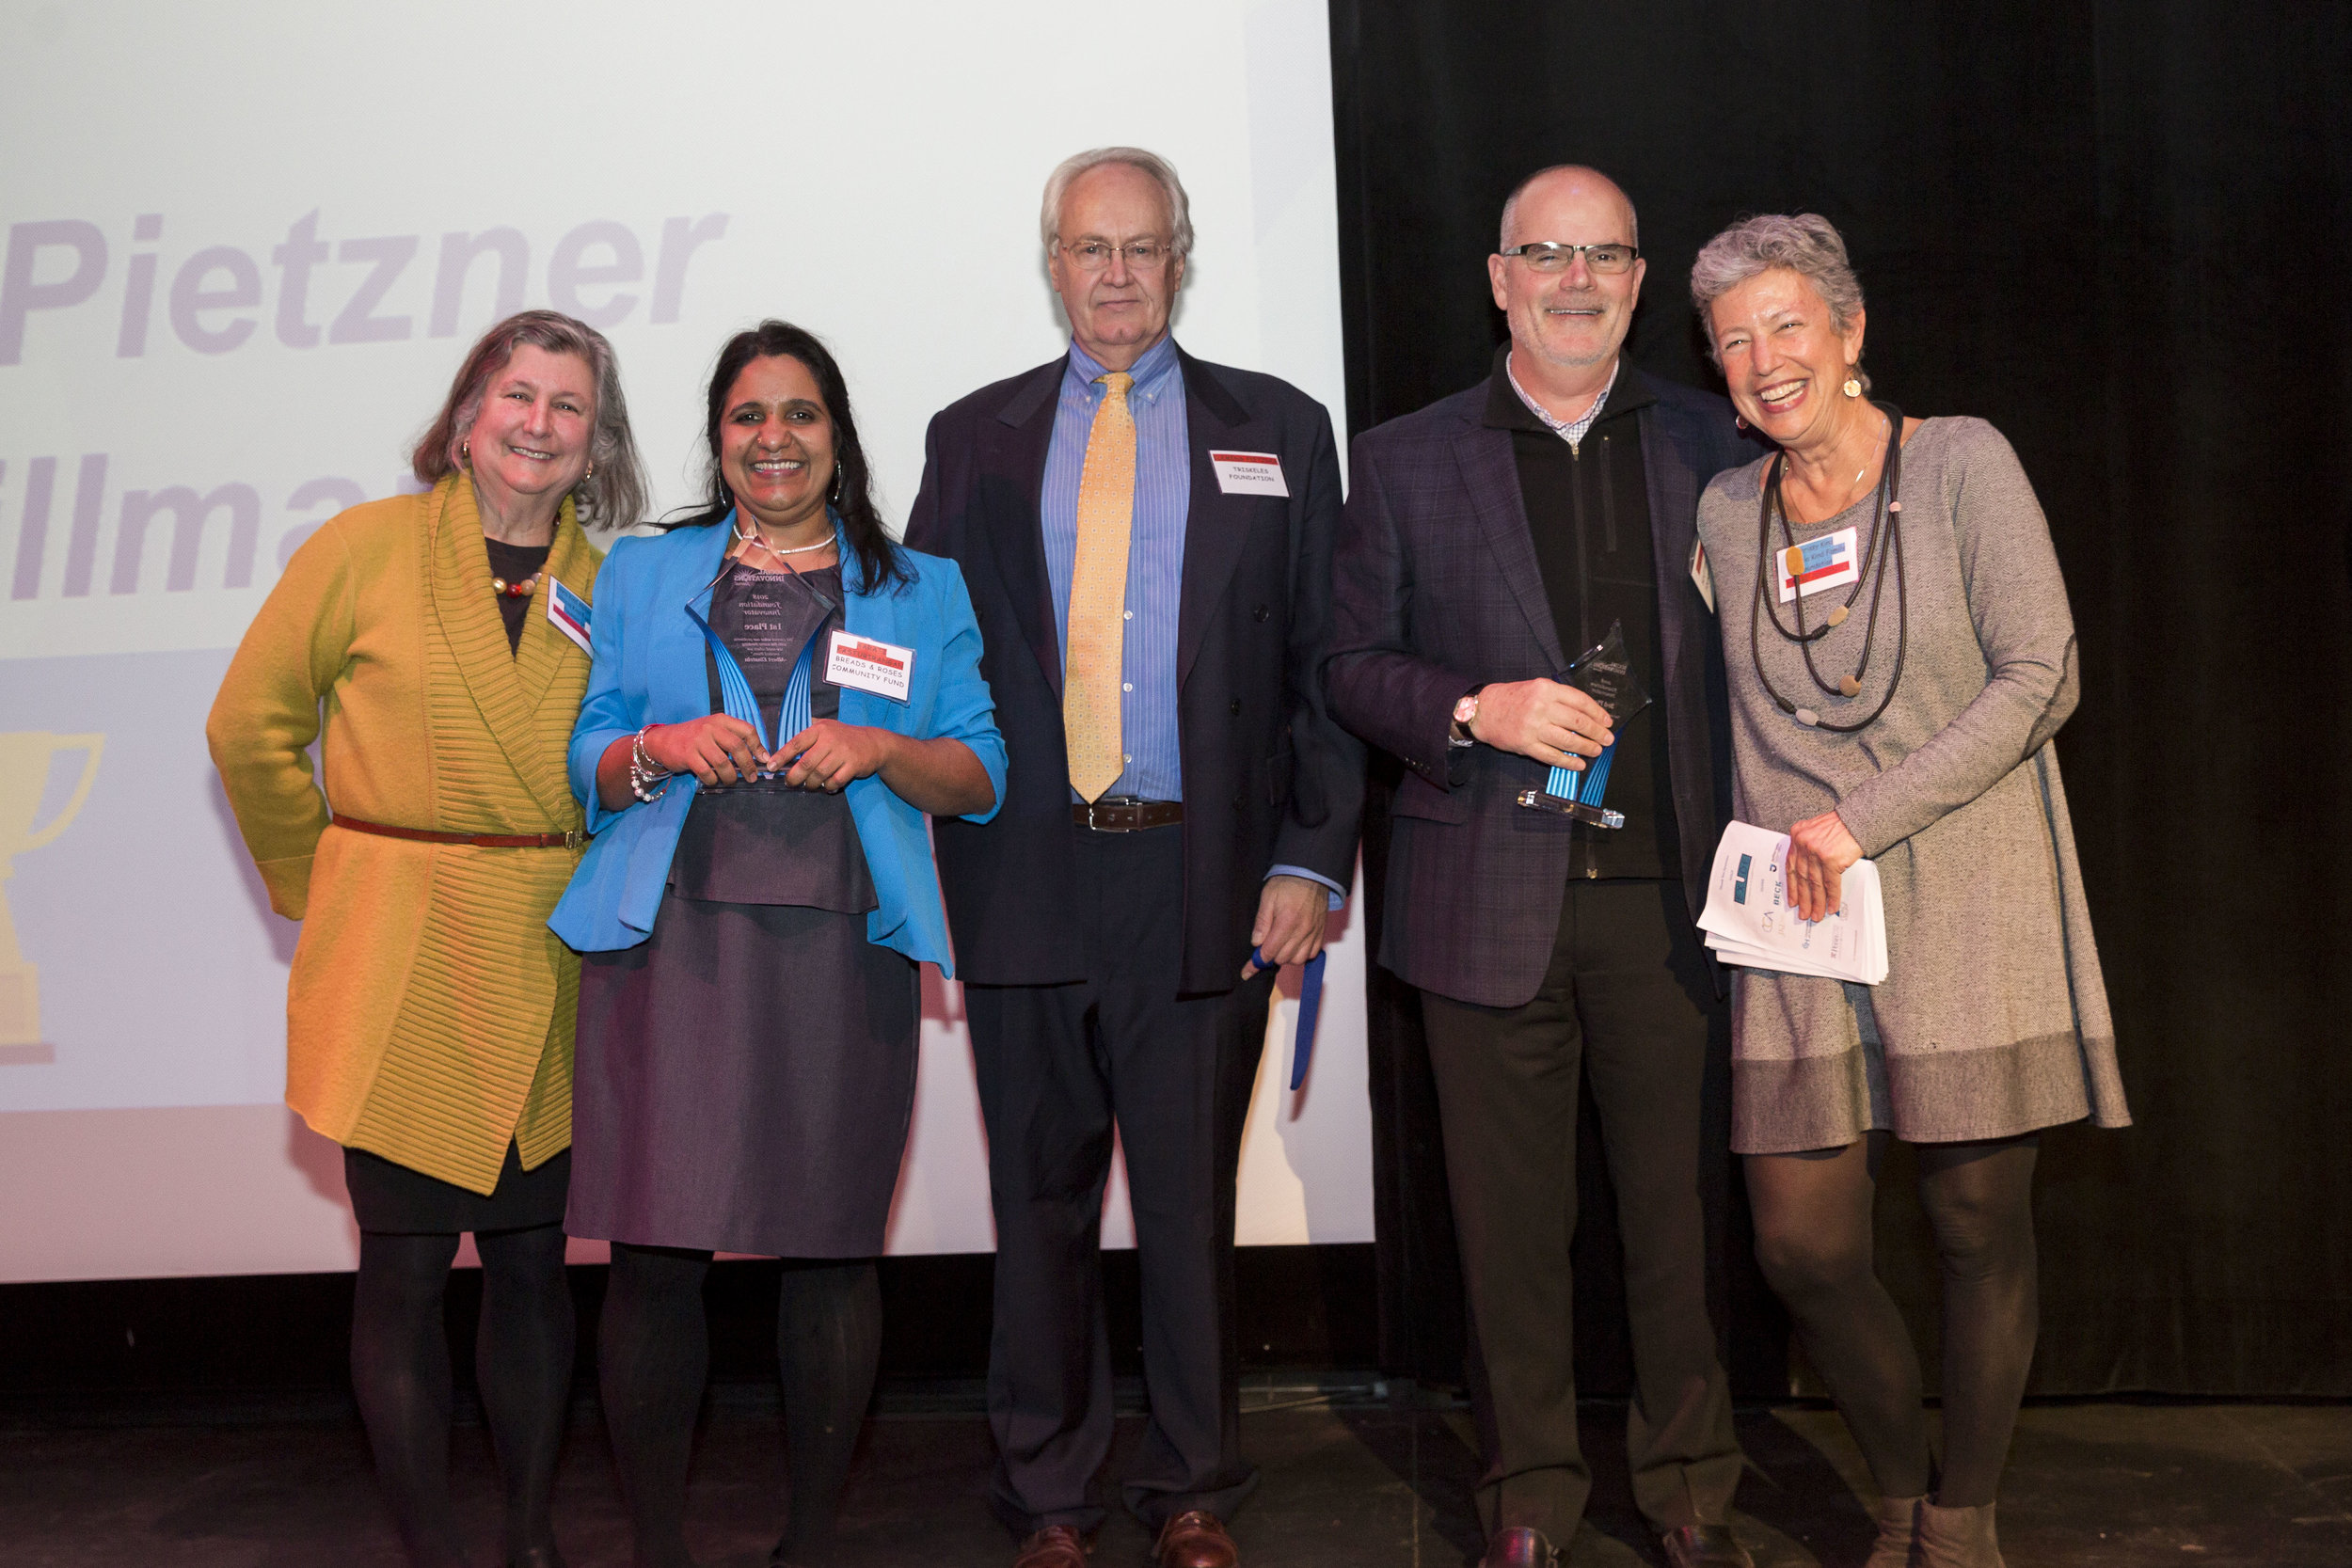 - FOUNDATION1st: AARATI KASTURIRANGAN, BREADS AND ROSES COMMUNITY FUND2nd: ENDRE WALLS, THE FRANKLIN FOUNDATION FOR INNOVATION3rd: JOSEPH PYLE, SCATTERGOOD FOUNDATION4th & 5th: CLEMENS PIETZNER, TRISKELES FOUNDATIONERIN & ERIN HILLMAN, EISENHOWER FELLOWSHIPS